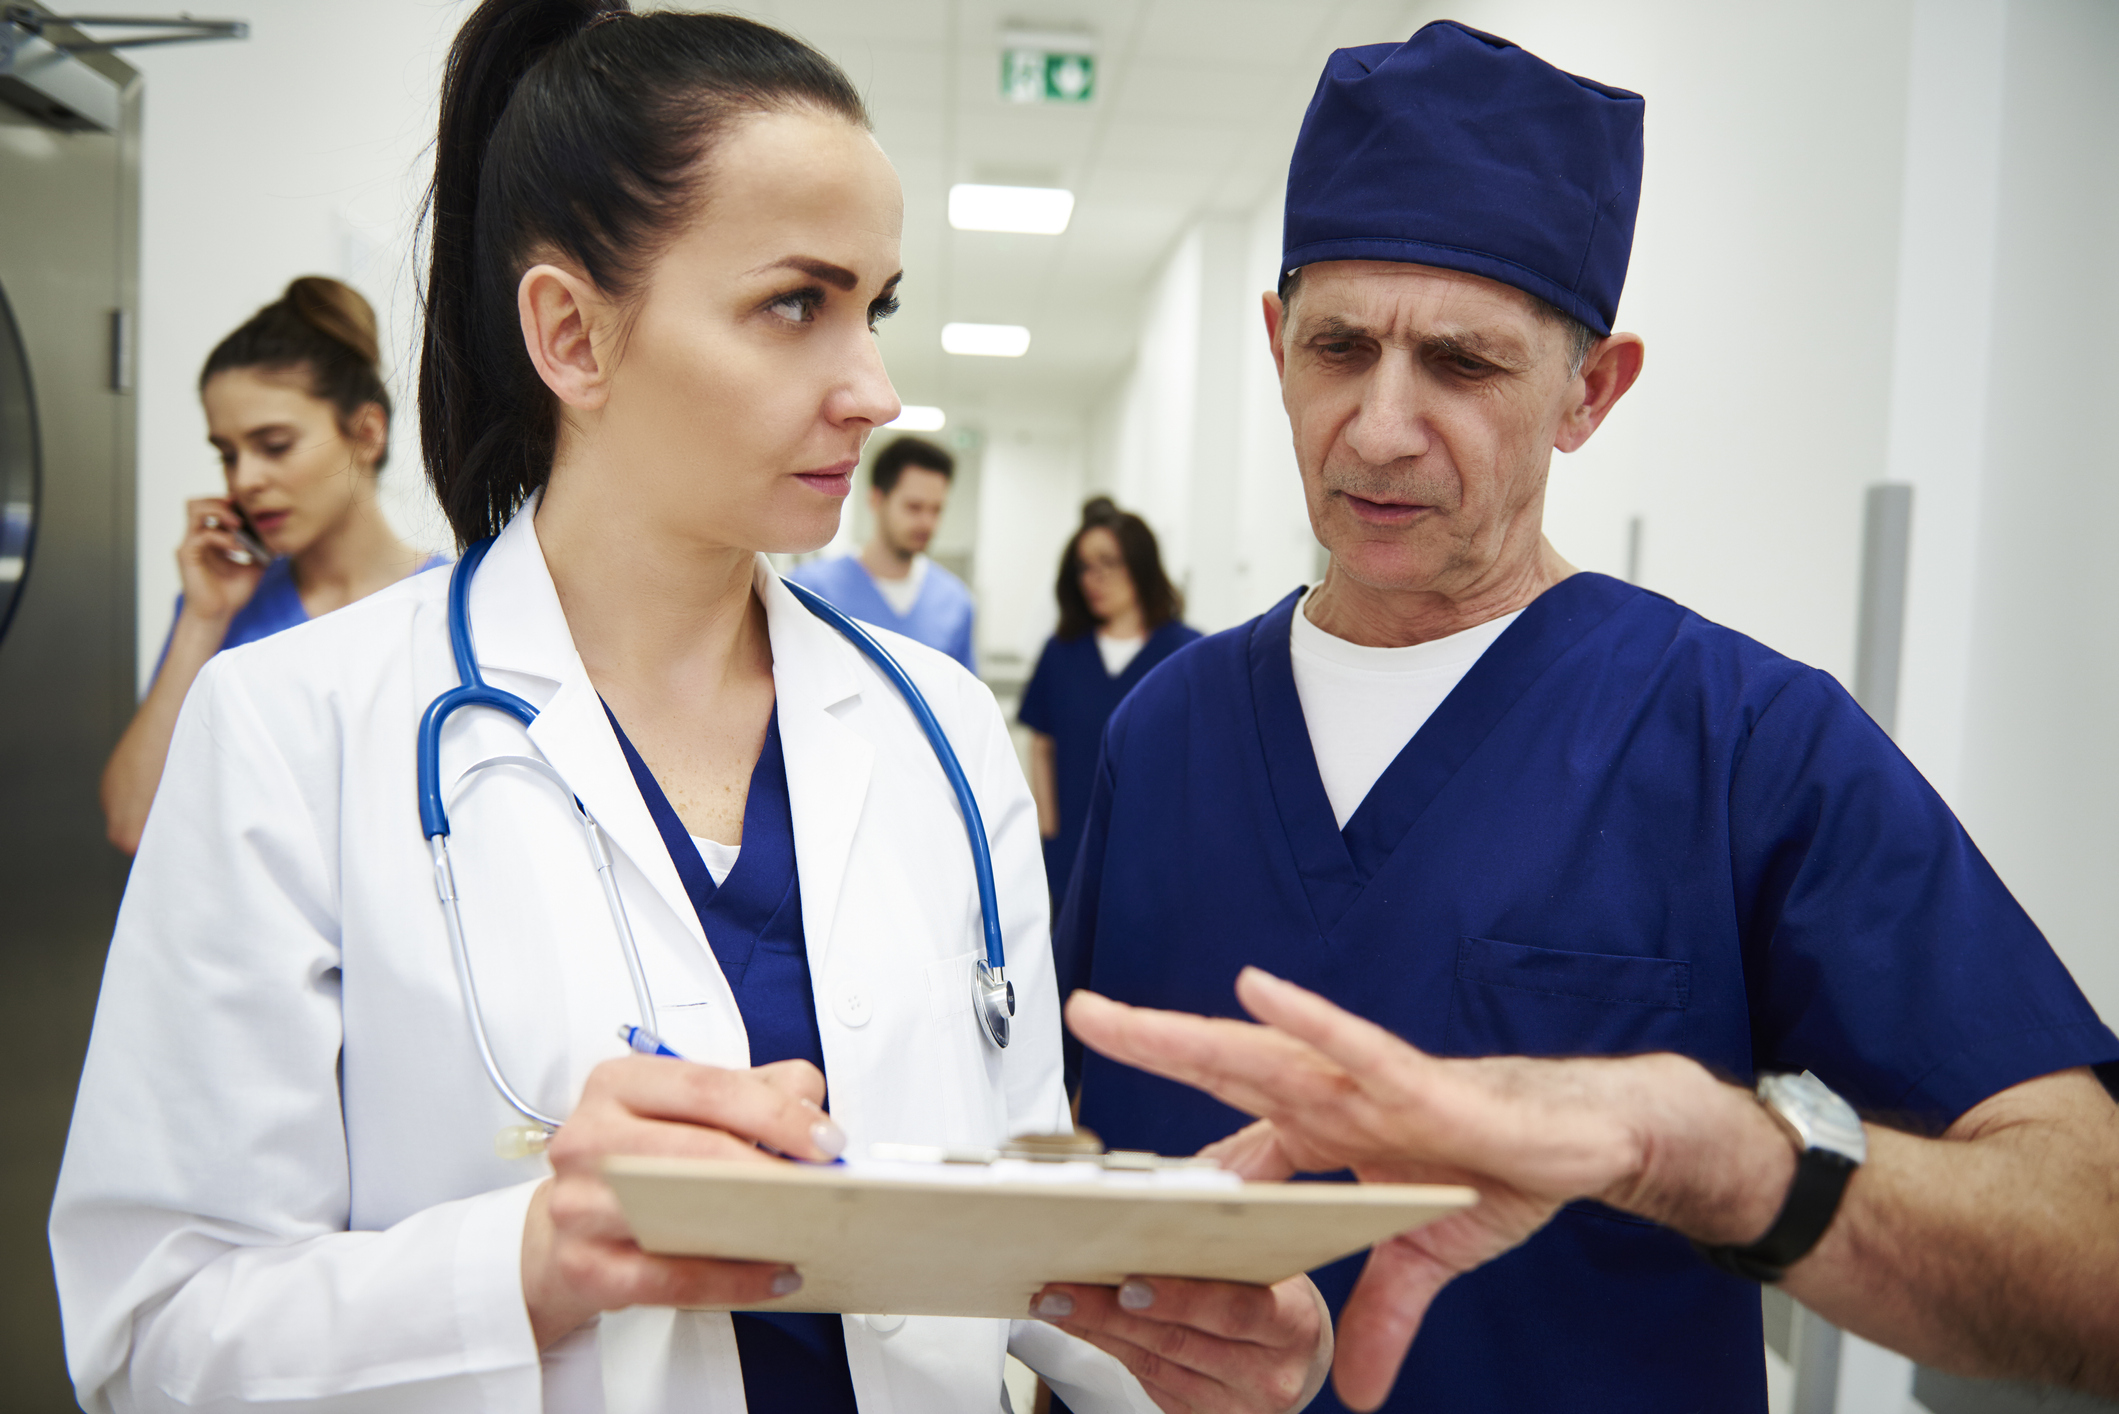 Highest Paid Specialties for Physician Assistants